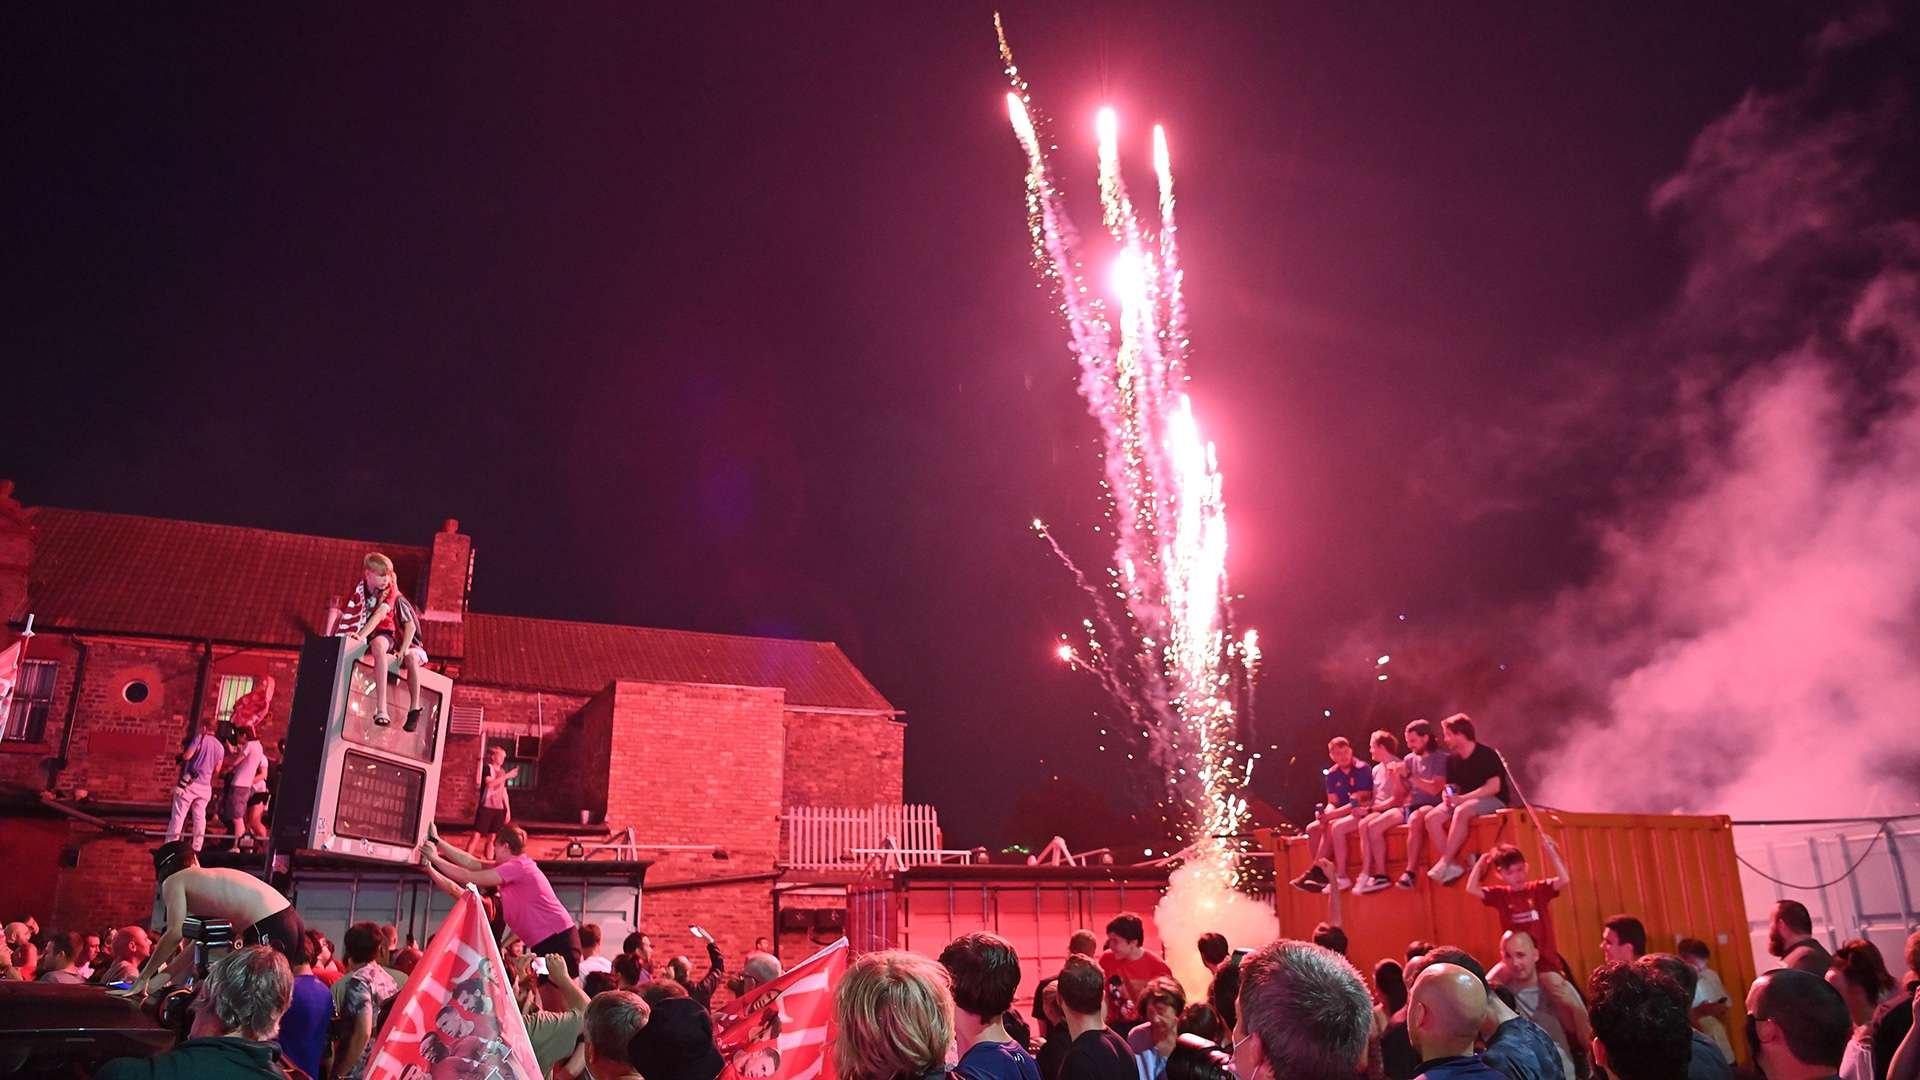 Video Jubilant Liverpool Fans Condemned For Wild Title Celebrations As Firework Hits Building Causes Fire Goal Com